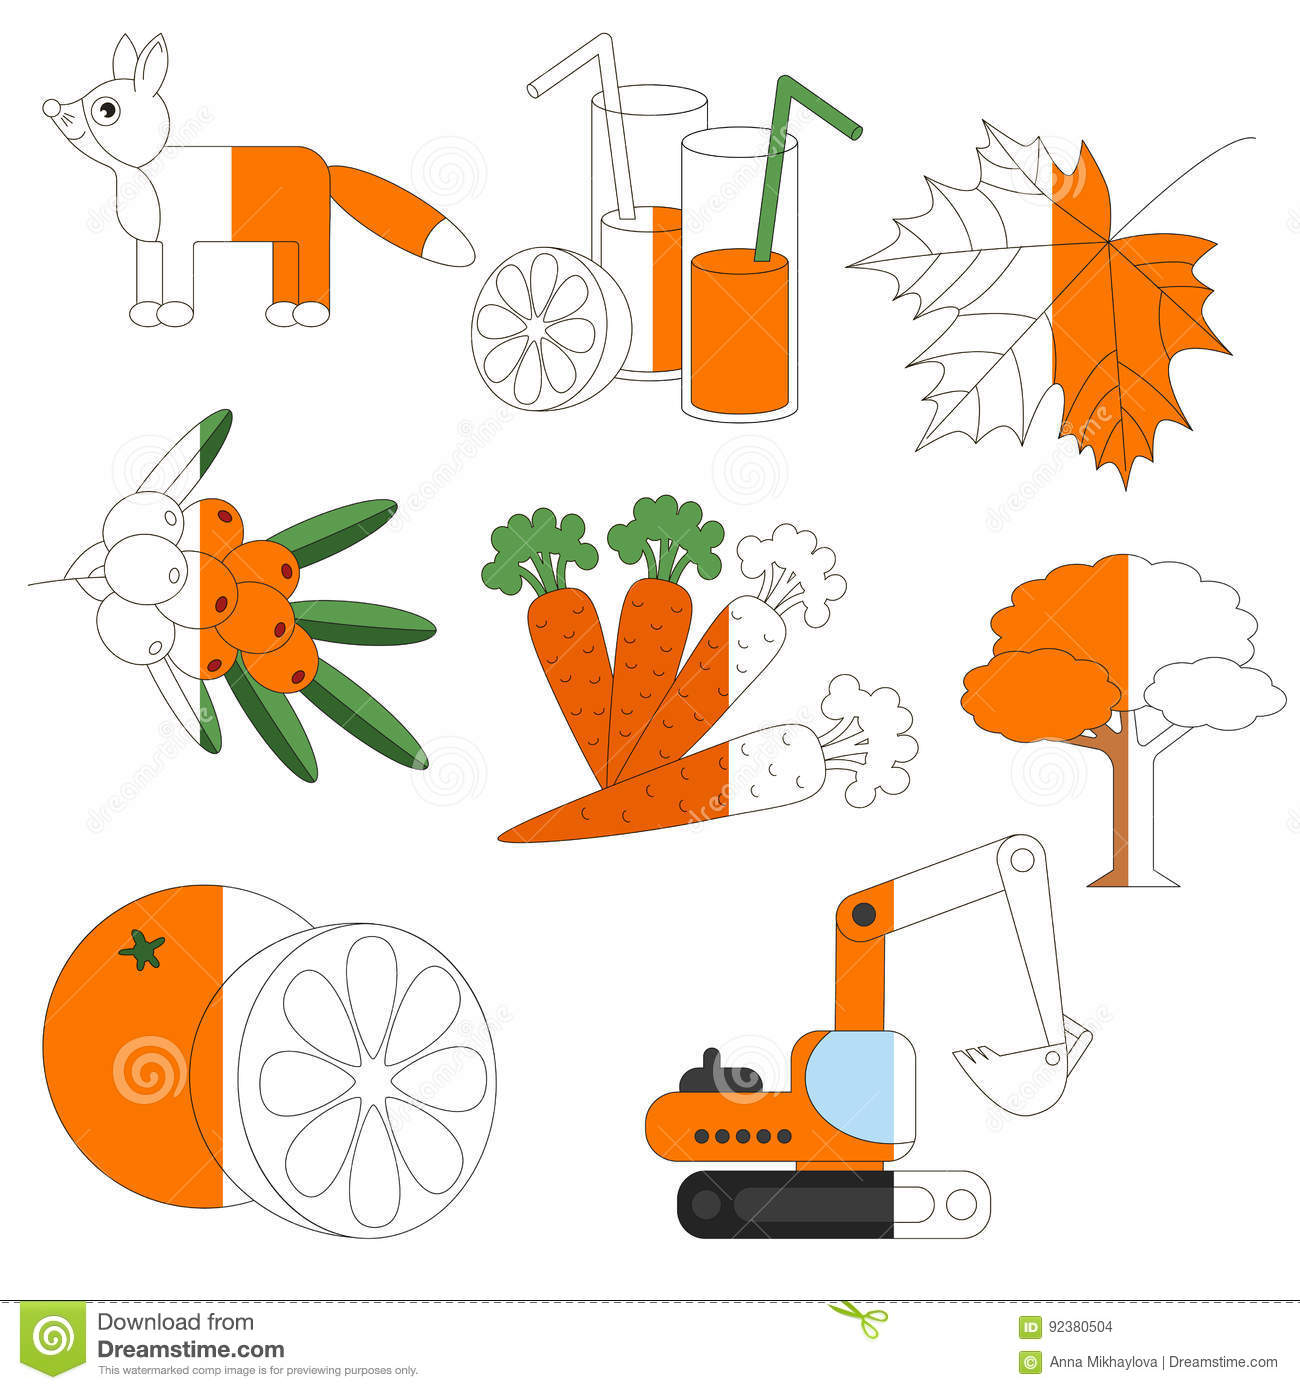 Orange Color Objects The Big Kid Game To Be Colored By